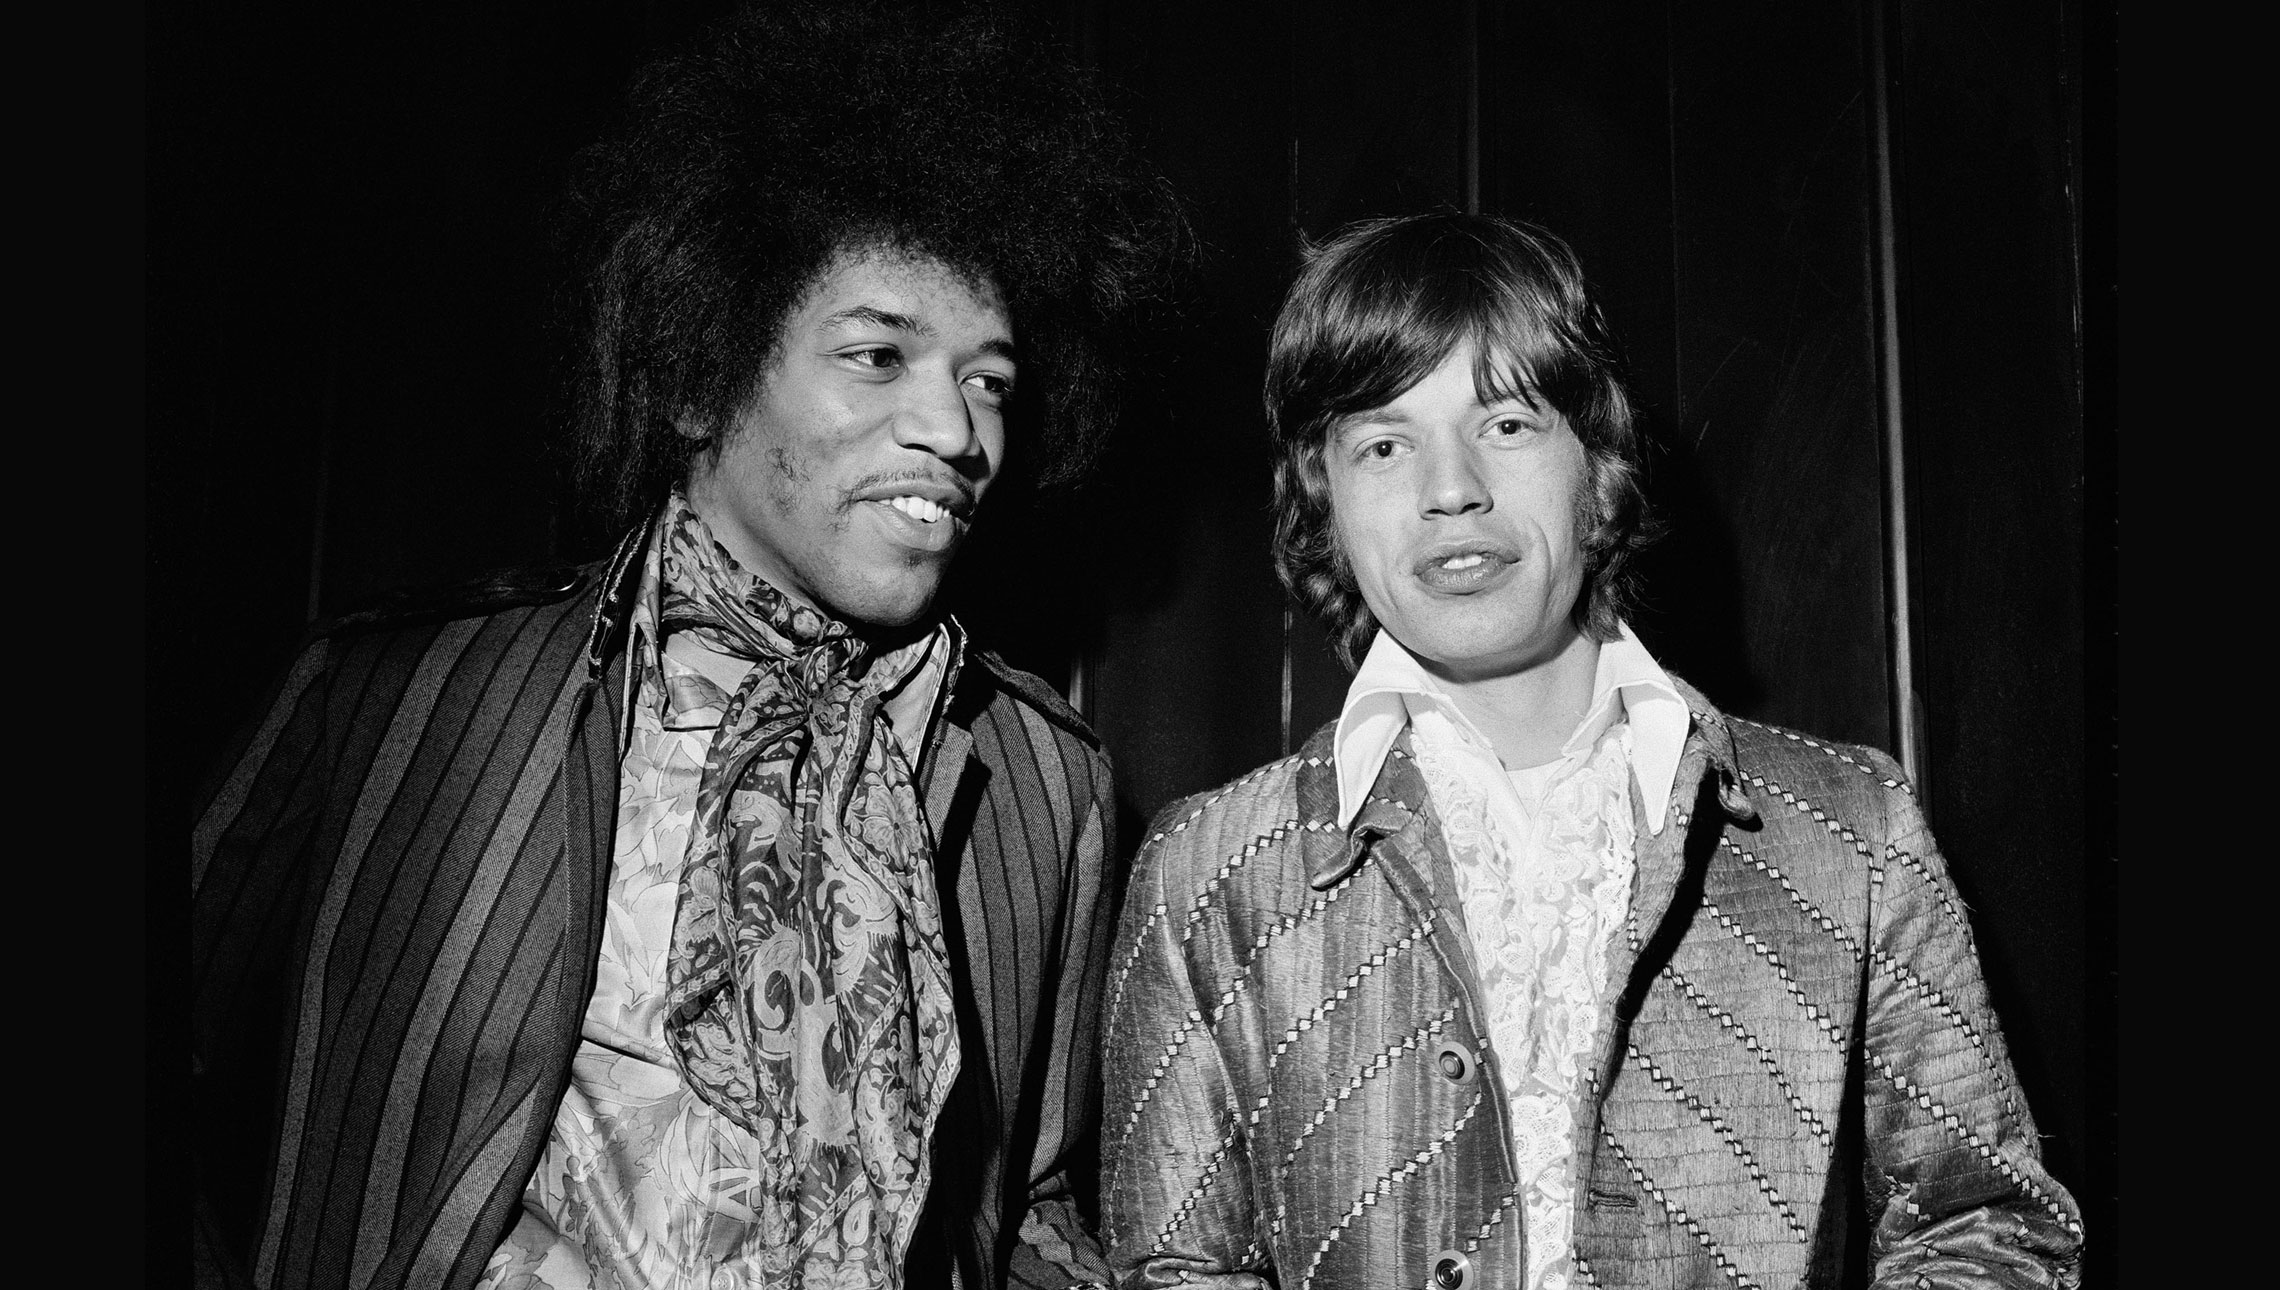 Mick Jagger and Jimi Hendrix. © Alec Byrne